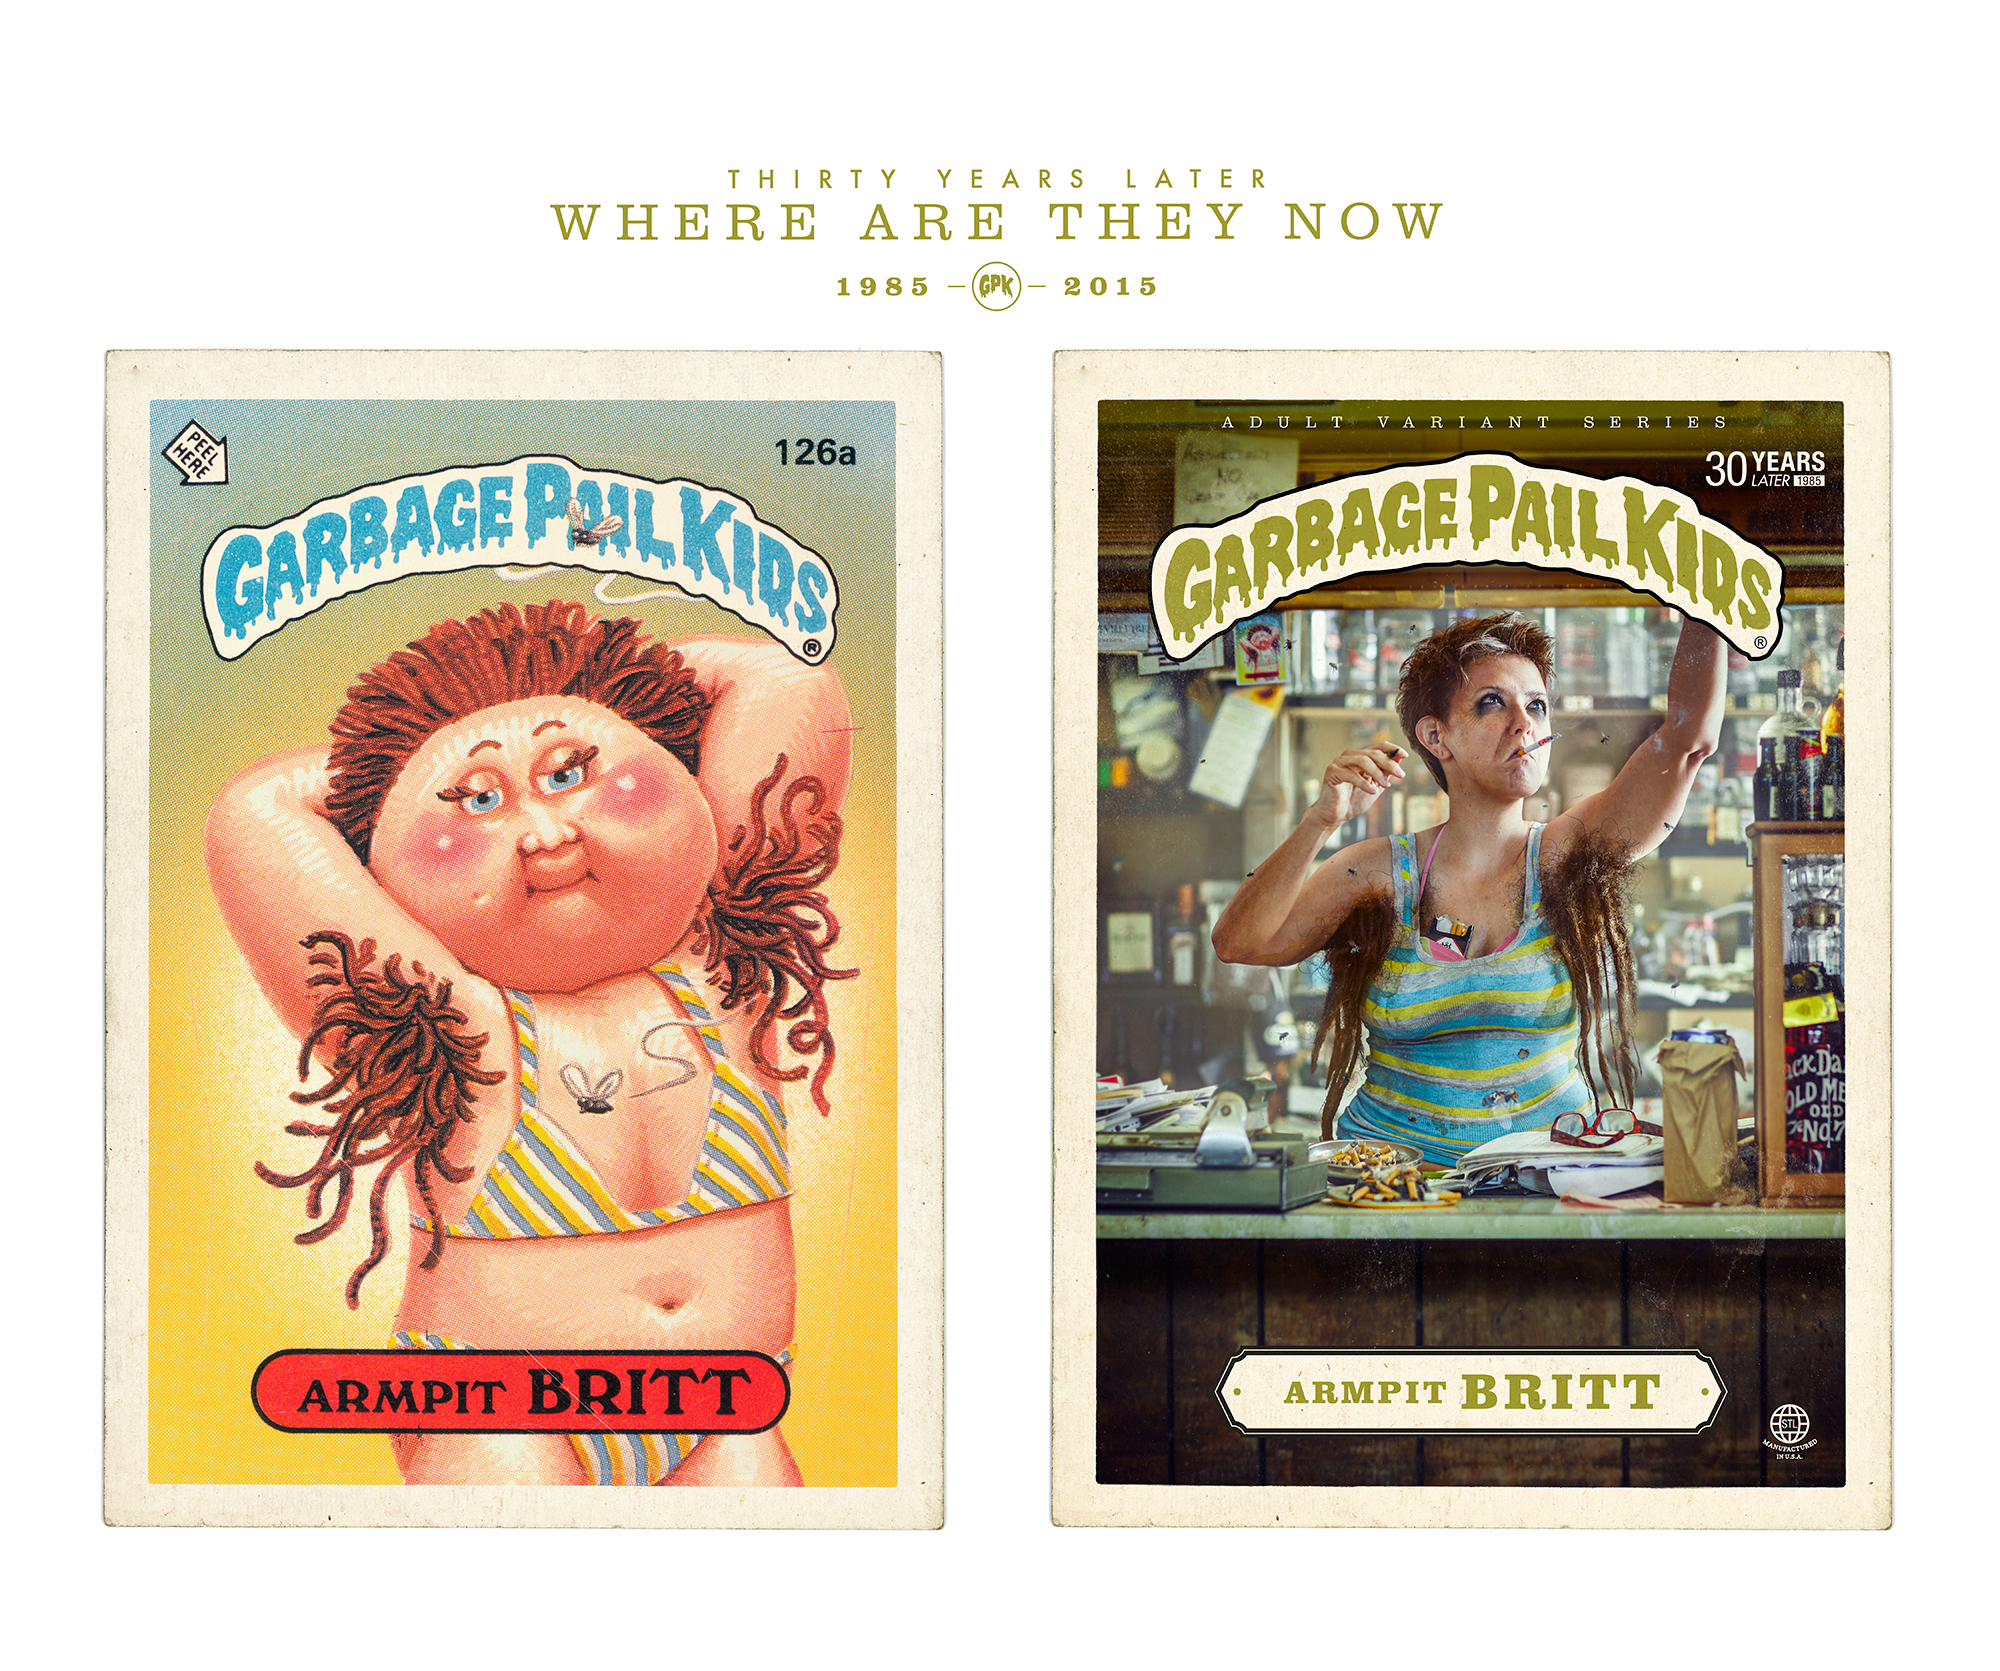 11f6303e62 Garbage Pail Kids - Where are they now  on Behance